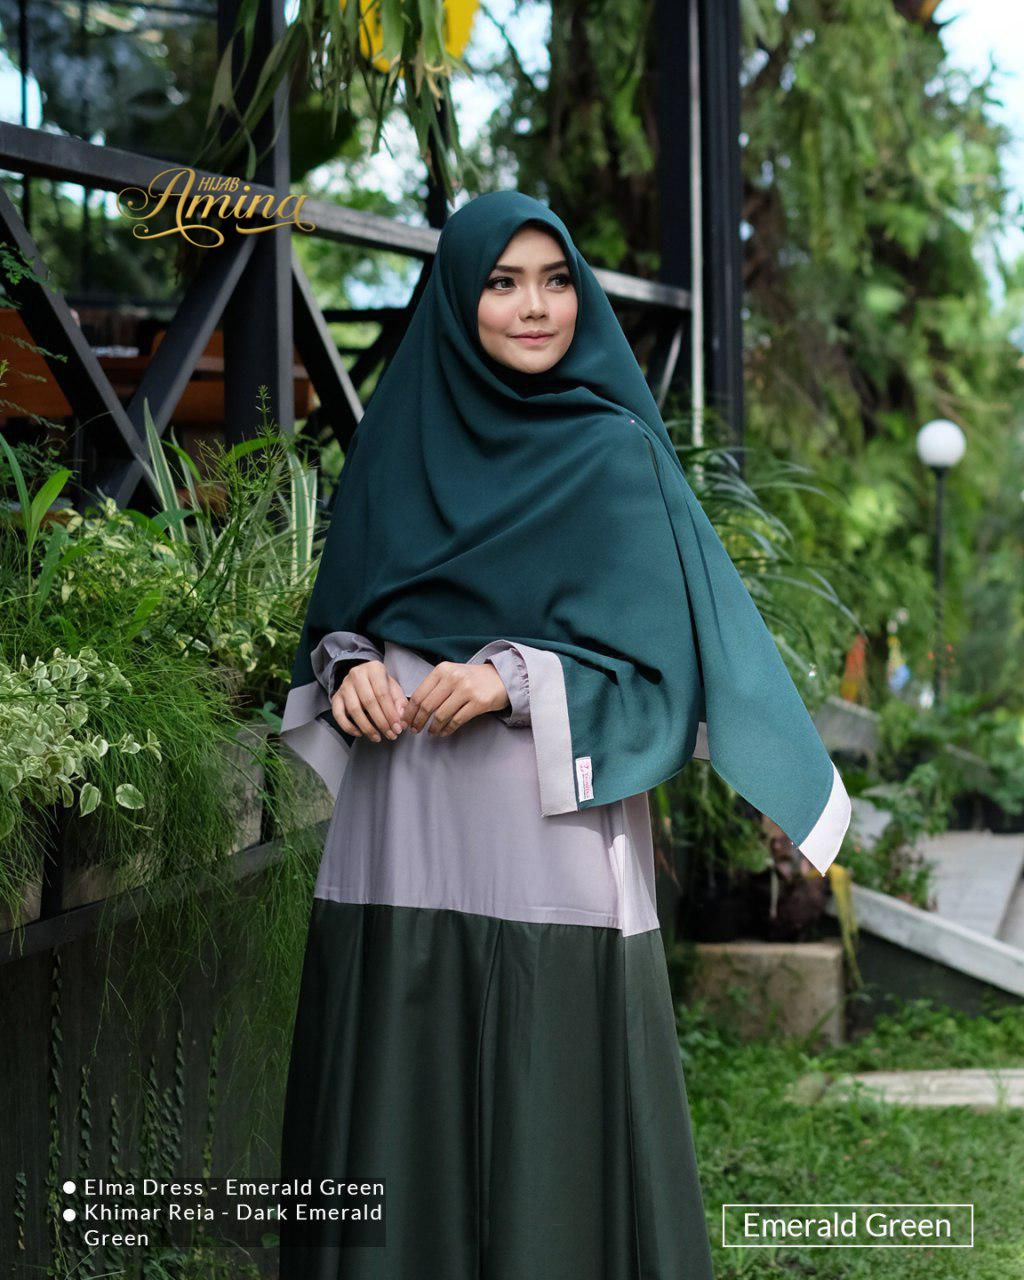 Elma Dress – Emerald Green